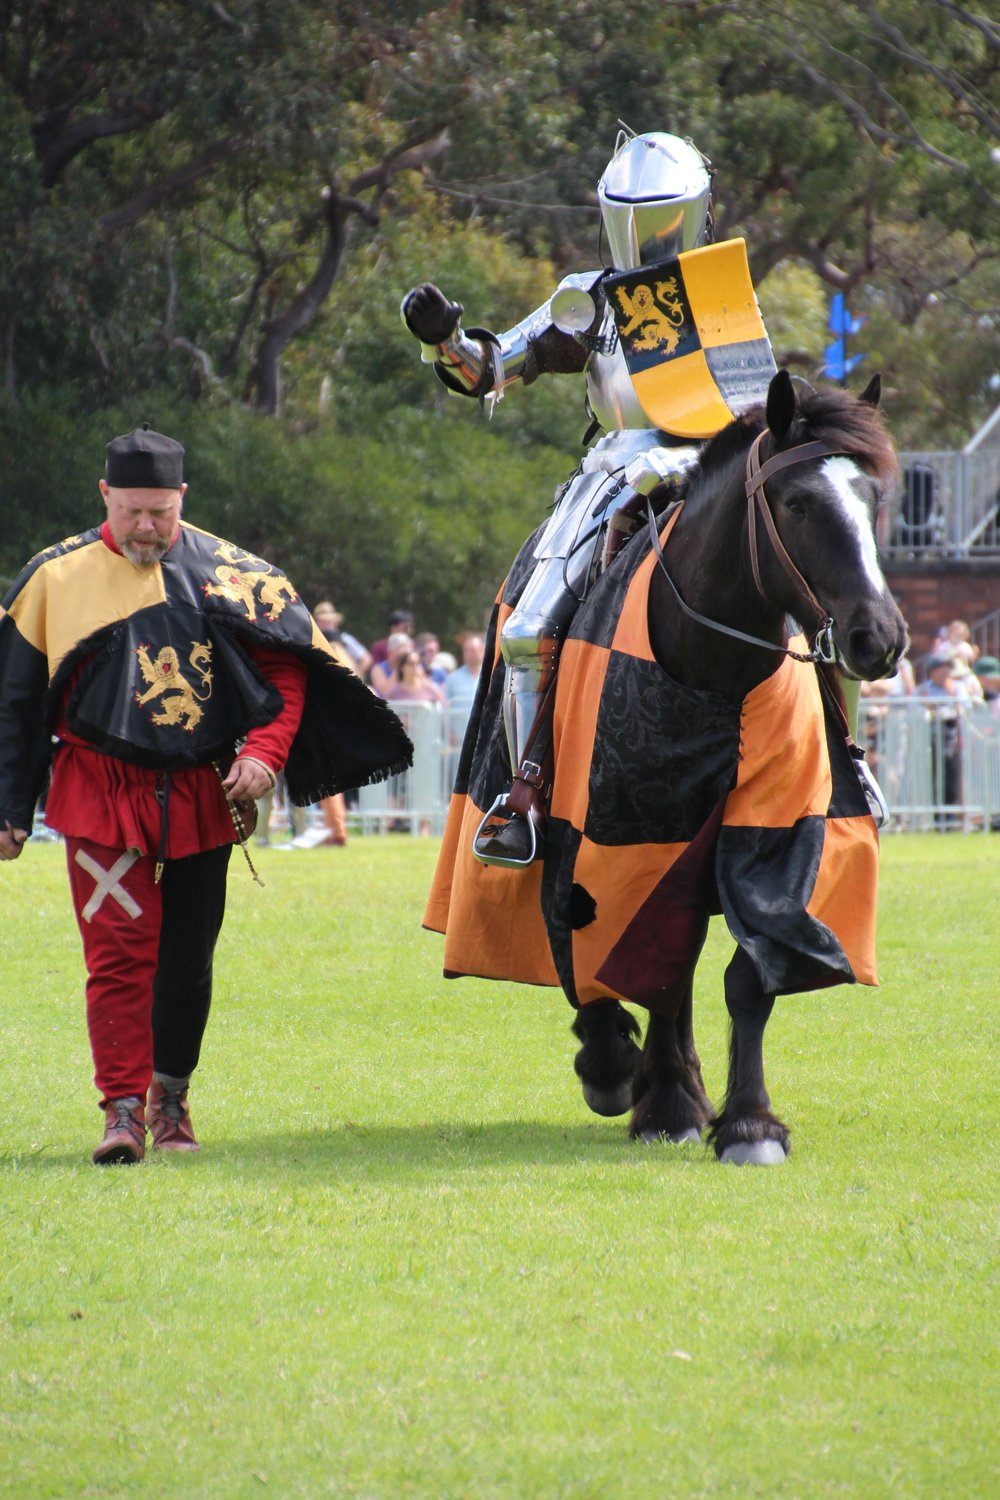 One of the brave and talented knights with his squire and handsome steed, taking part in the Jousting at St Ives Medieval Faire.